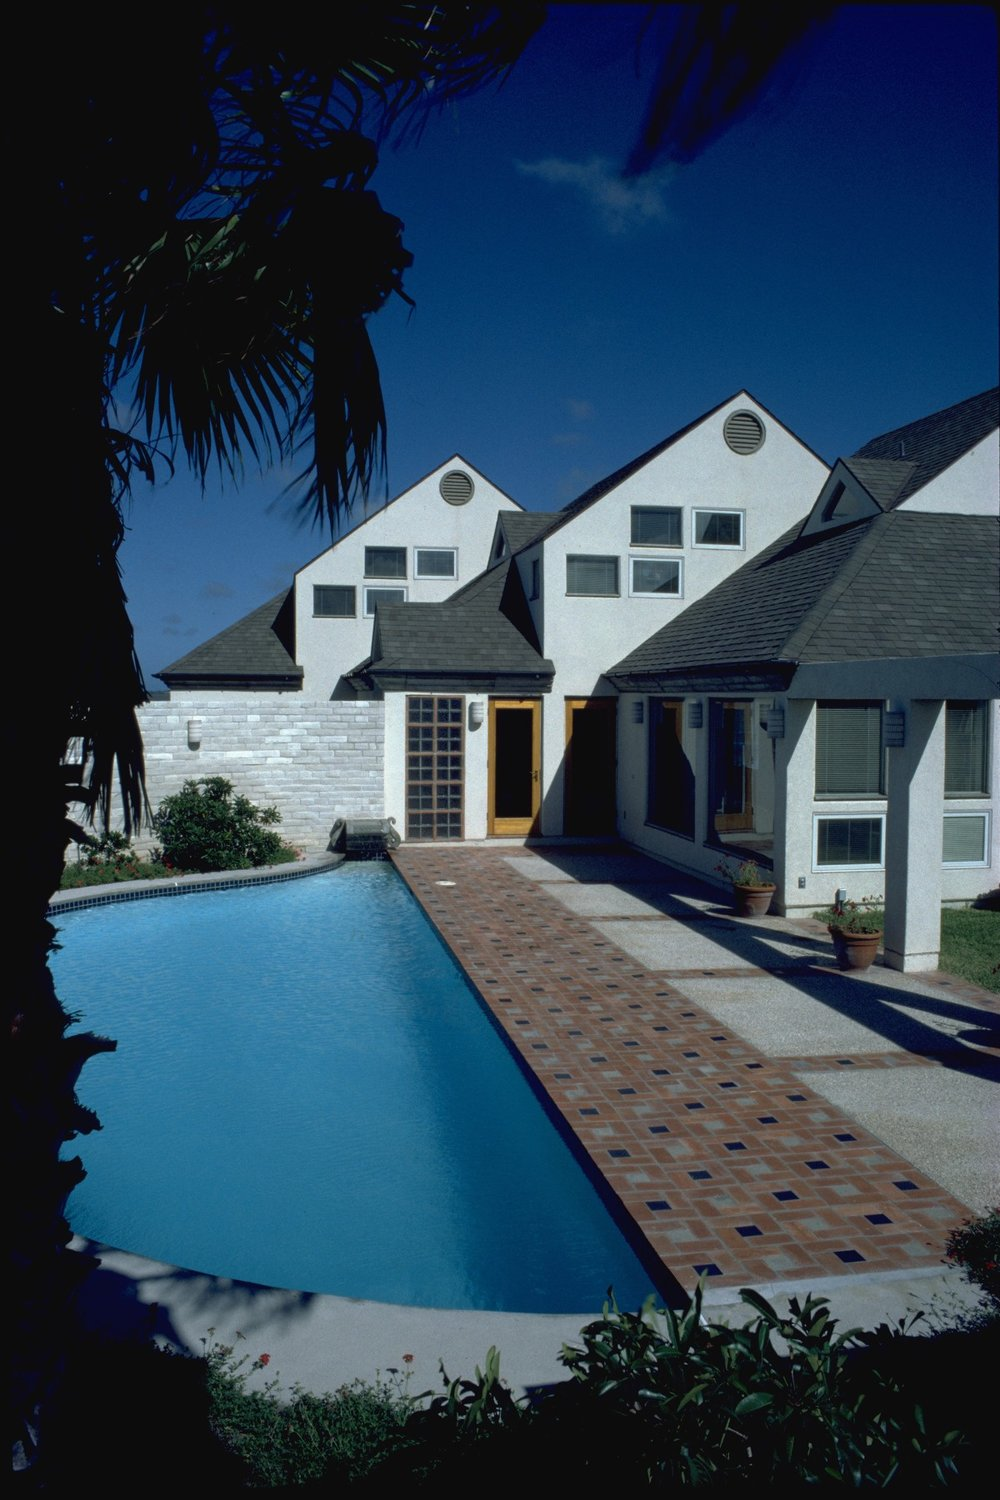 richter residence pool.jpg